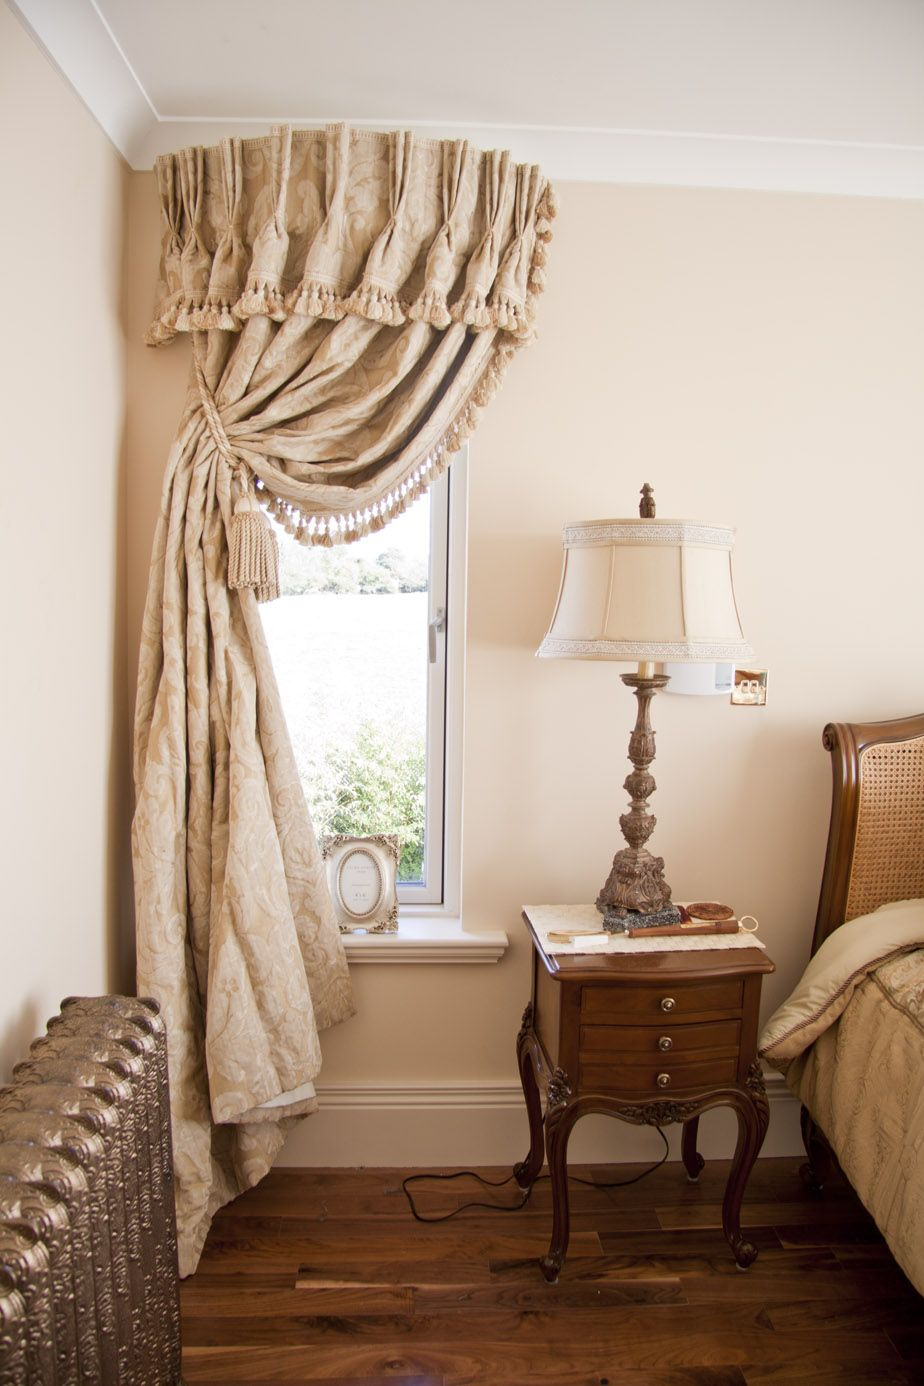 Use Curved Cornice Above Dining Room Drapes This Continues Circular Theme And Adds